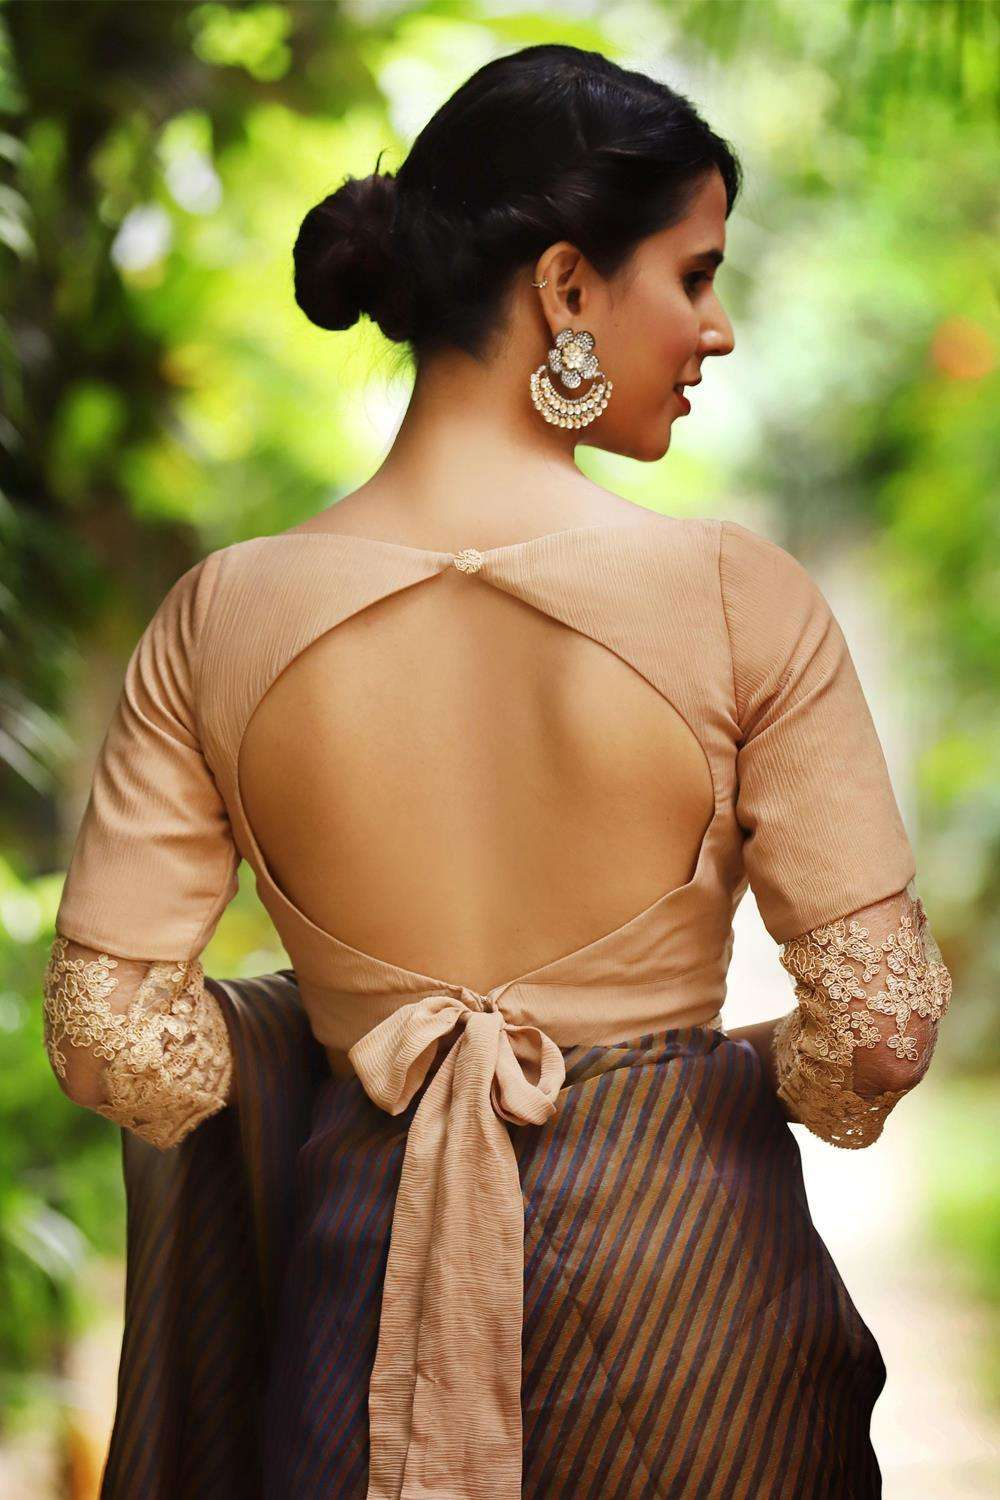 Beige chiffon blouse with chiffon and lace sleeve